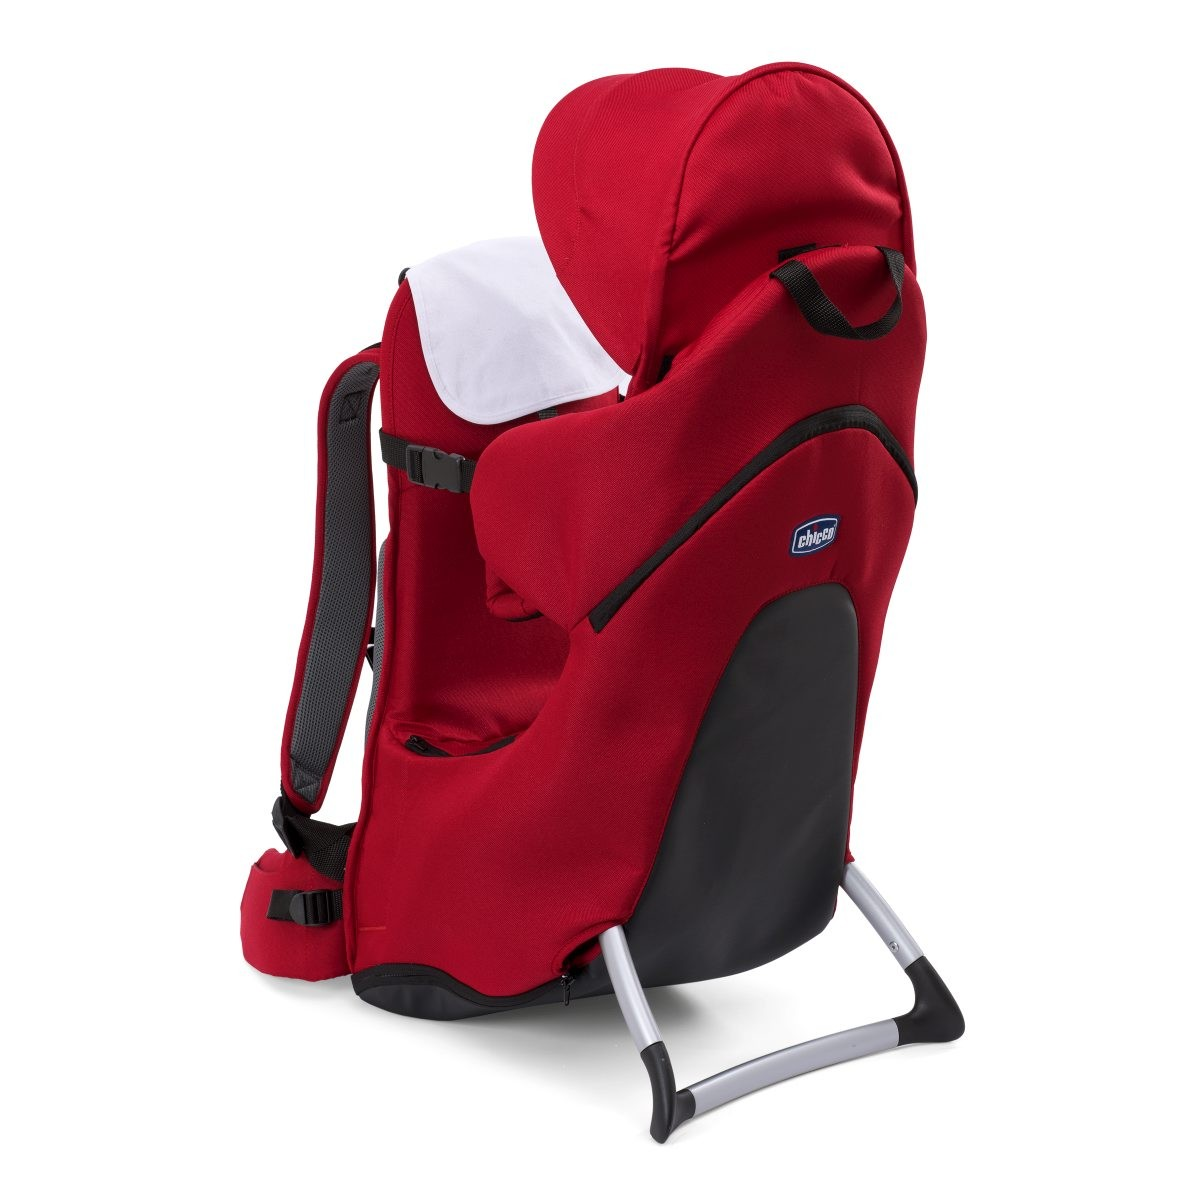 Porte bébé Dorsal Finder – Chicco 01. Comments. Leave a comment · Baby Door  Rental The meeting a54e230f4e2